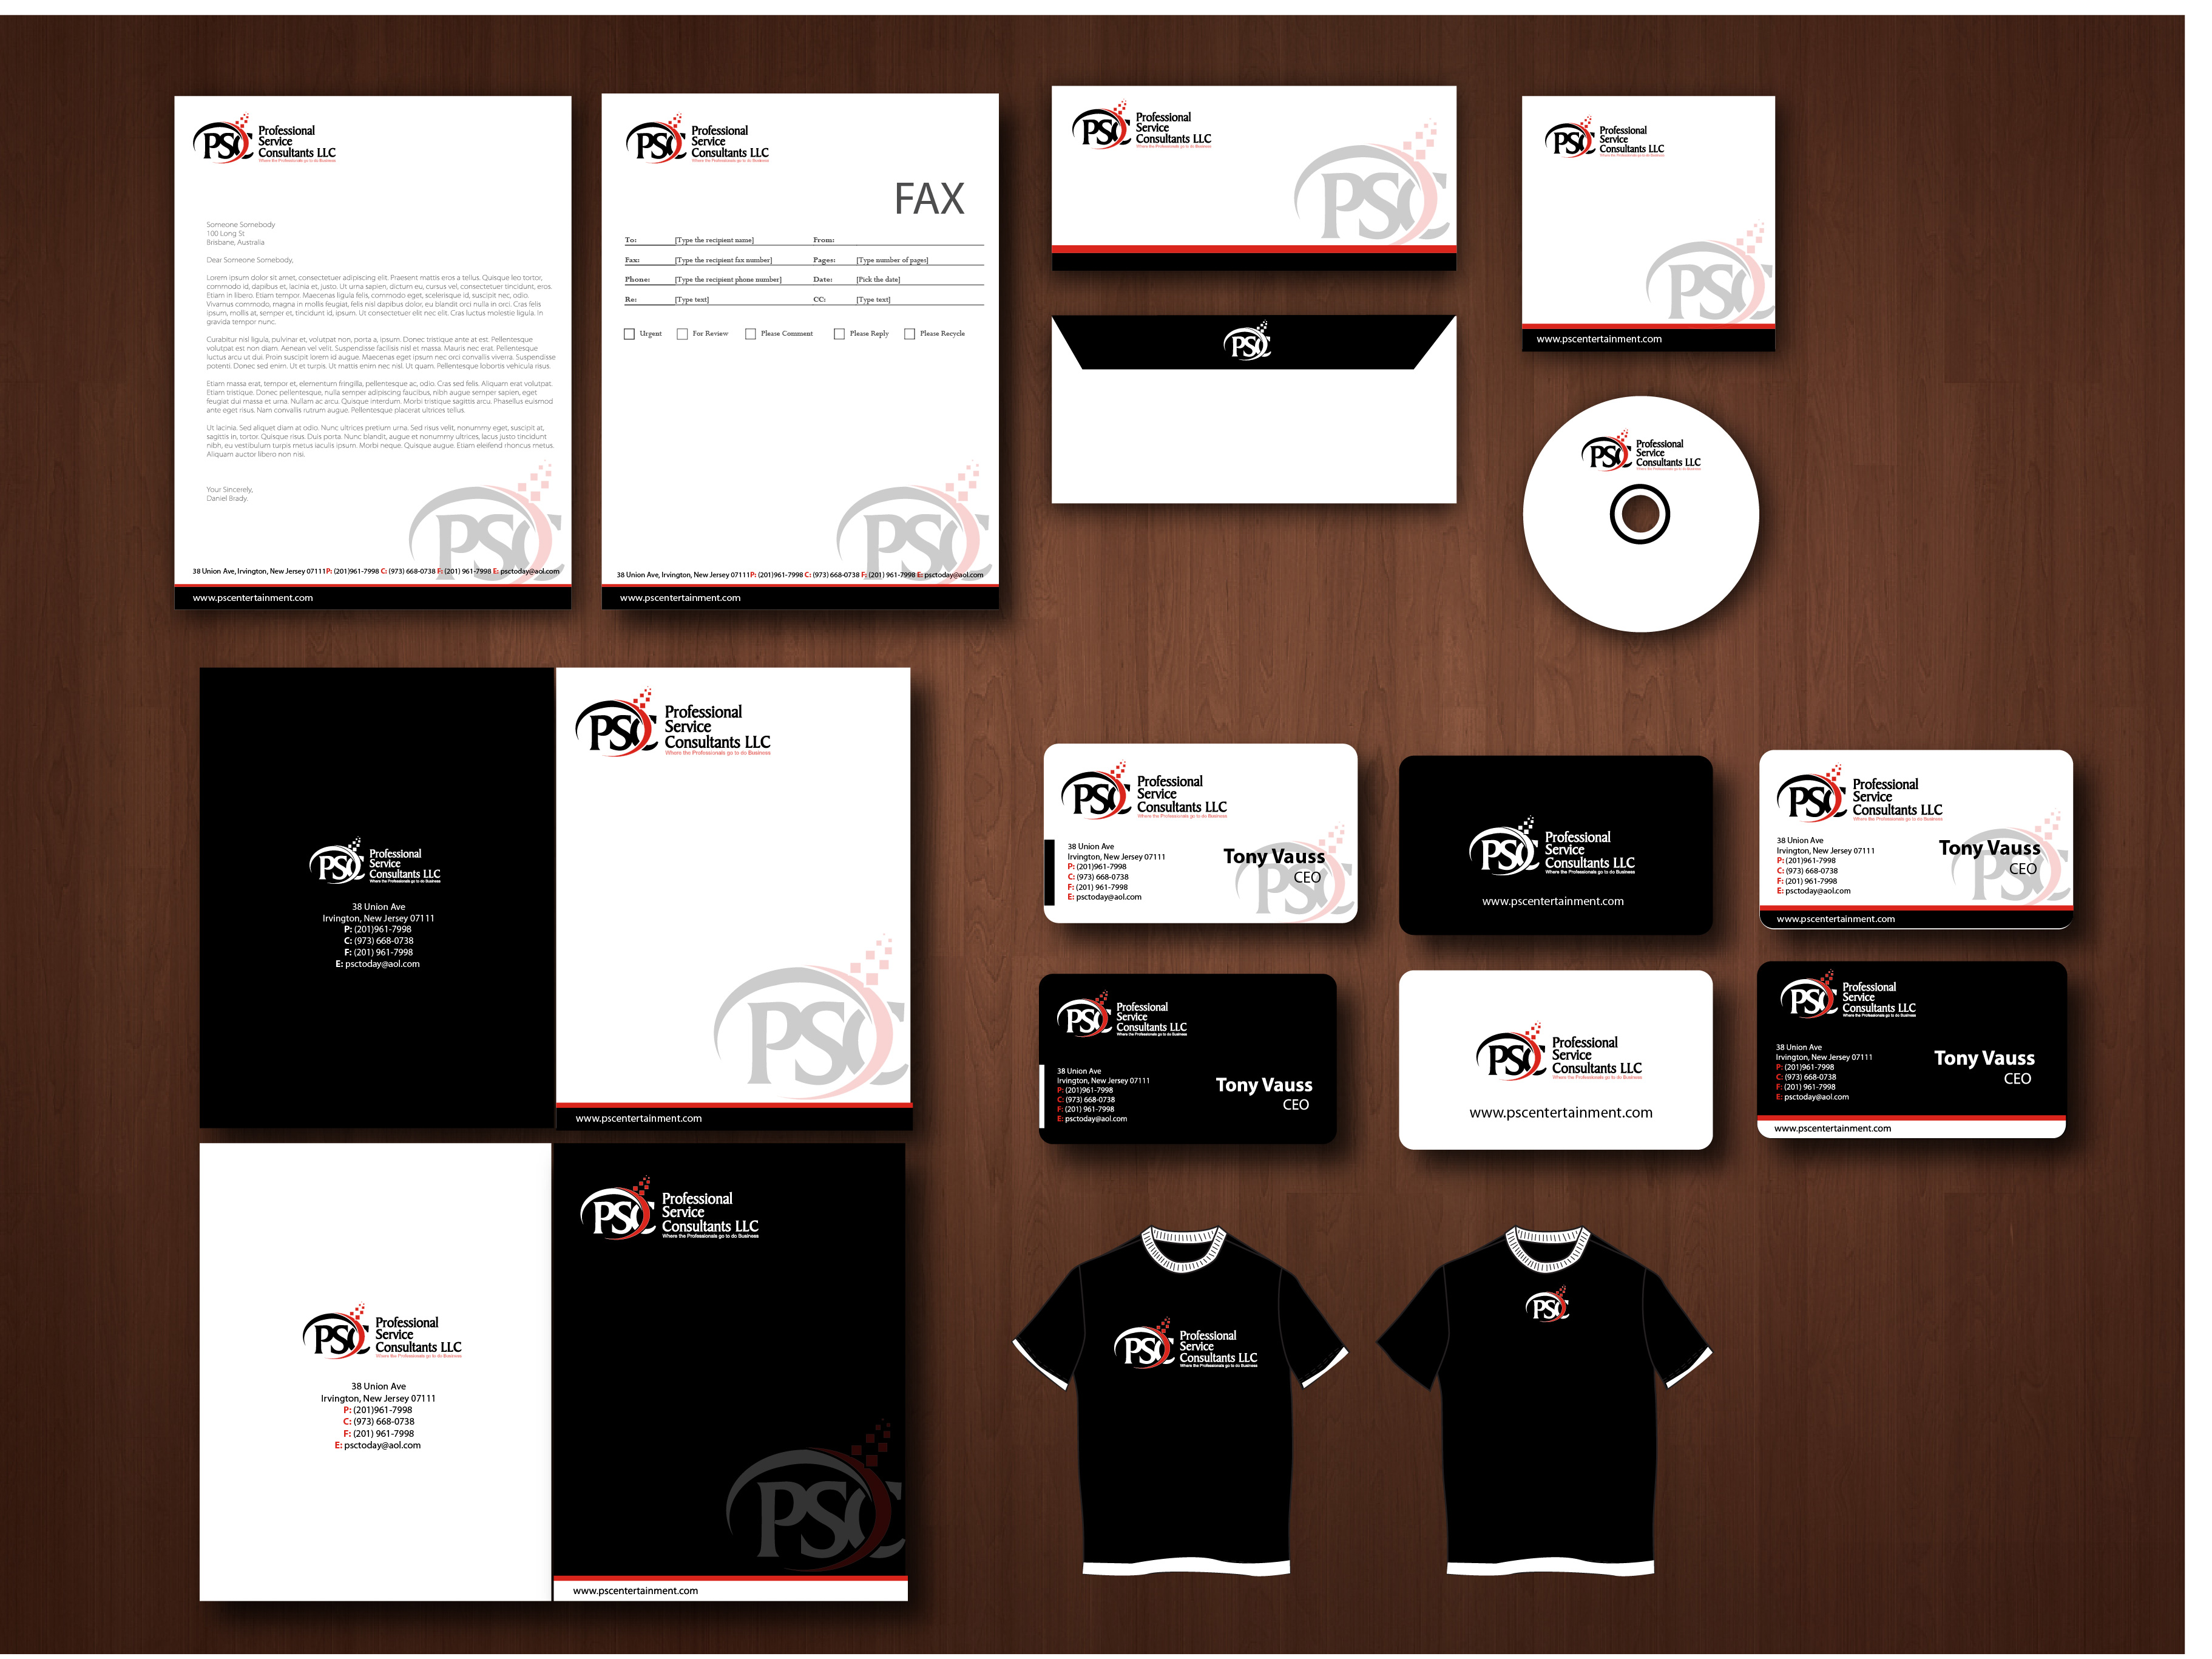 Check out this design for business cards letterhead presentation check out this design for business cards letterhead presentation folders envelopes cd cover and case t shirts by mycroburst reheart Image collections